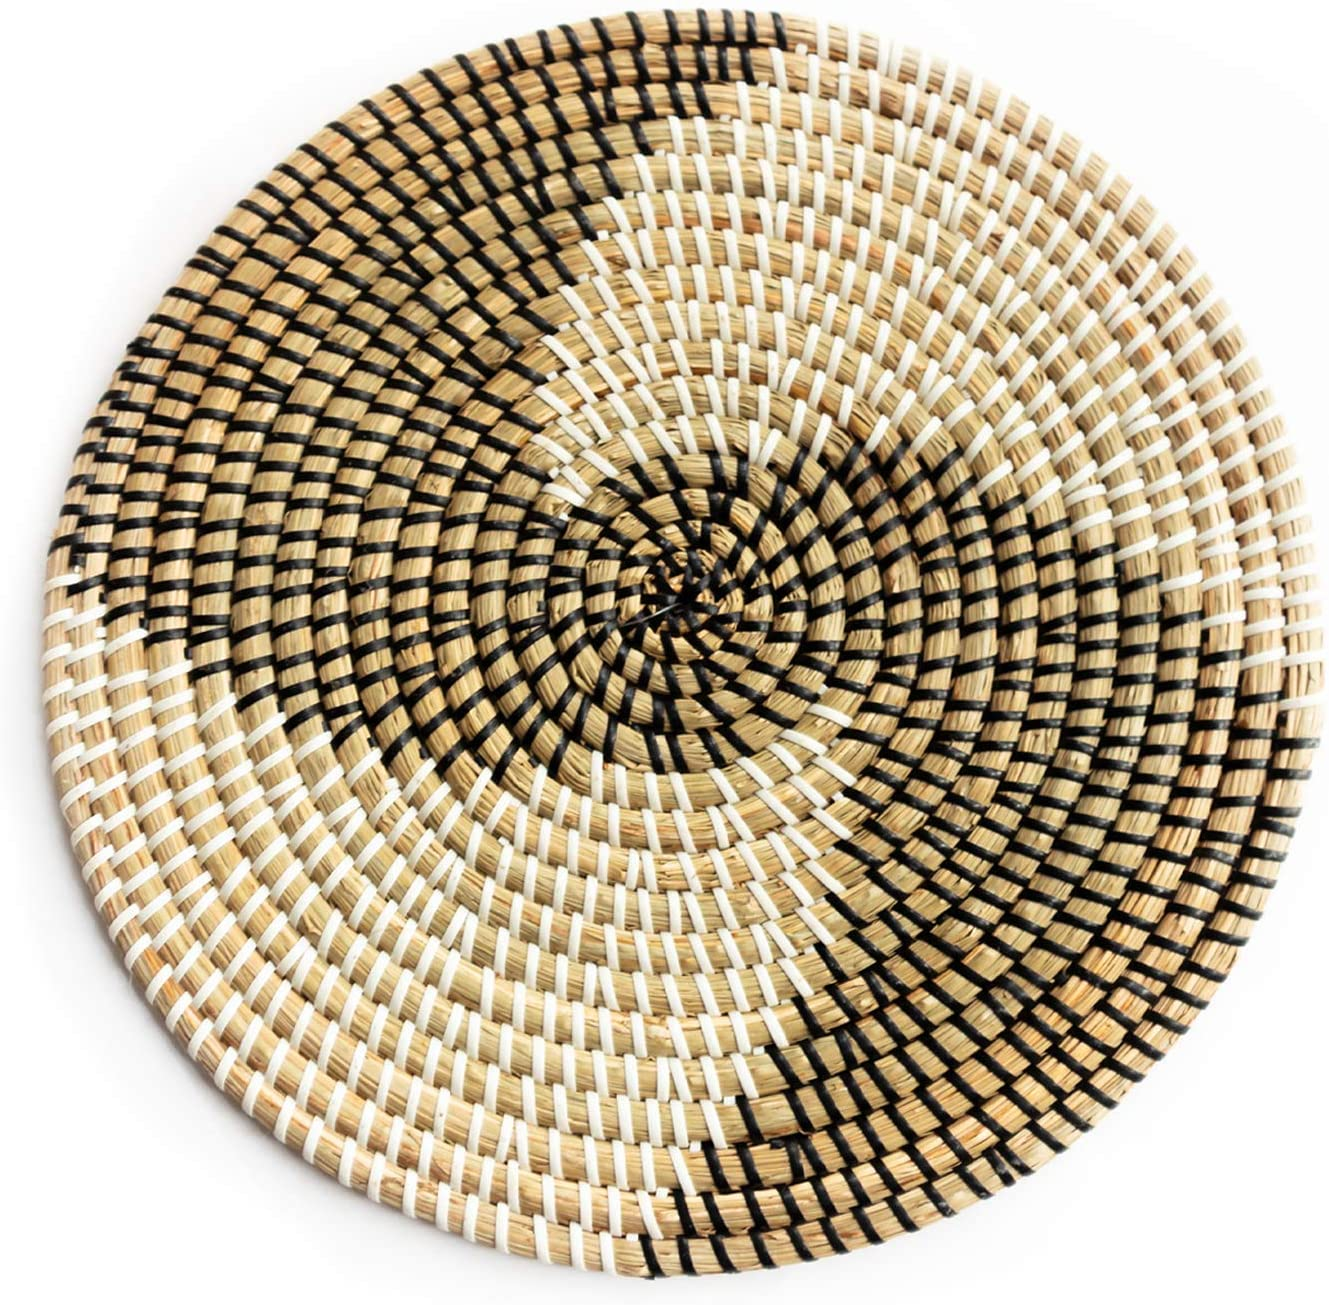 Decorative seagrass wall plate/wall basket hanging decoration